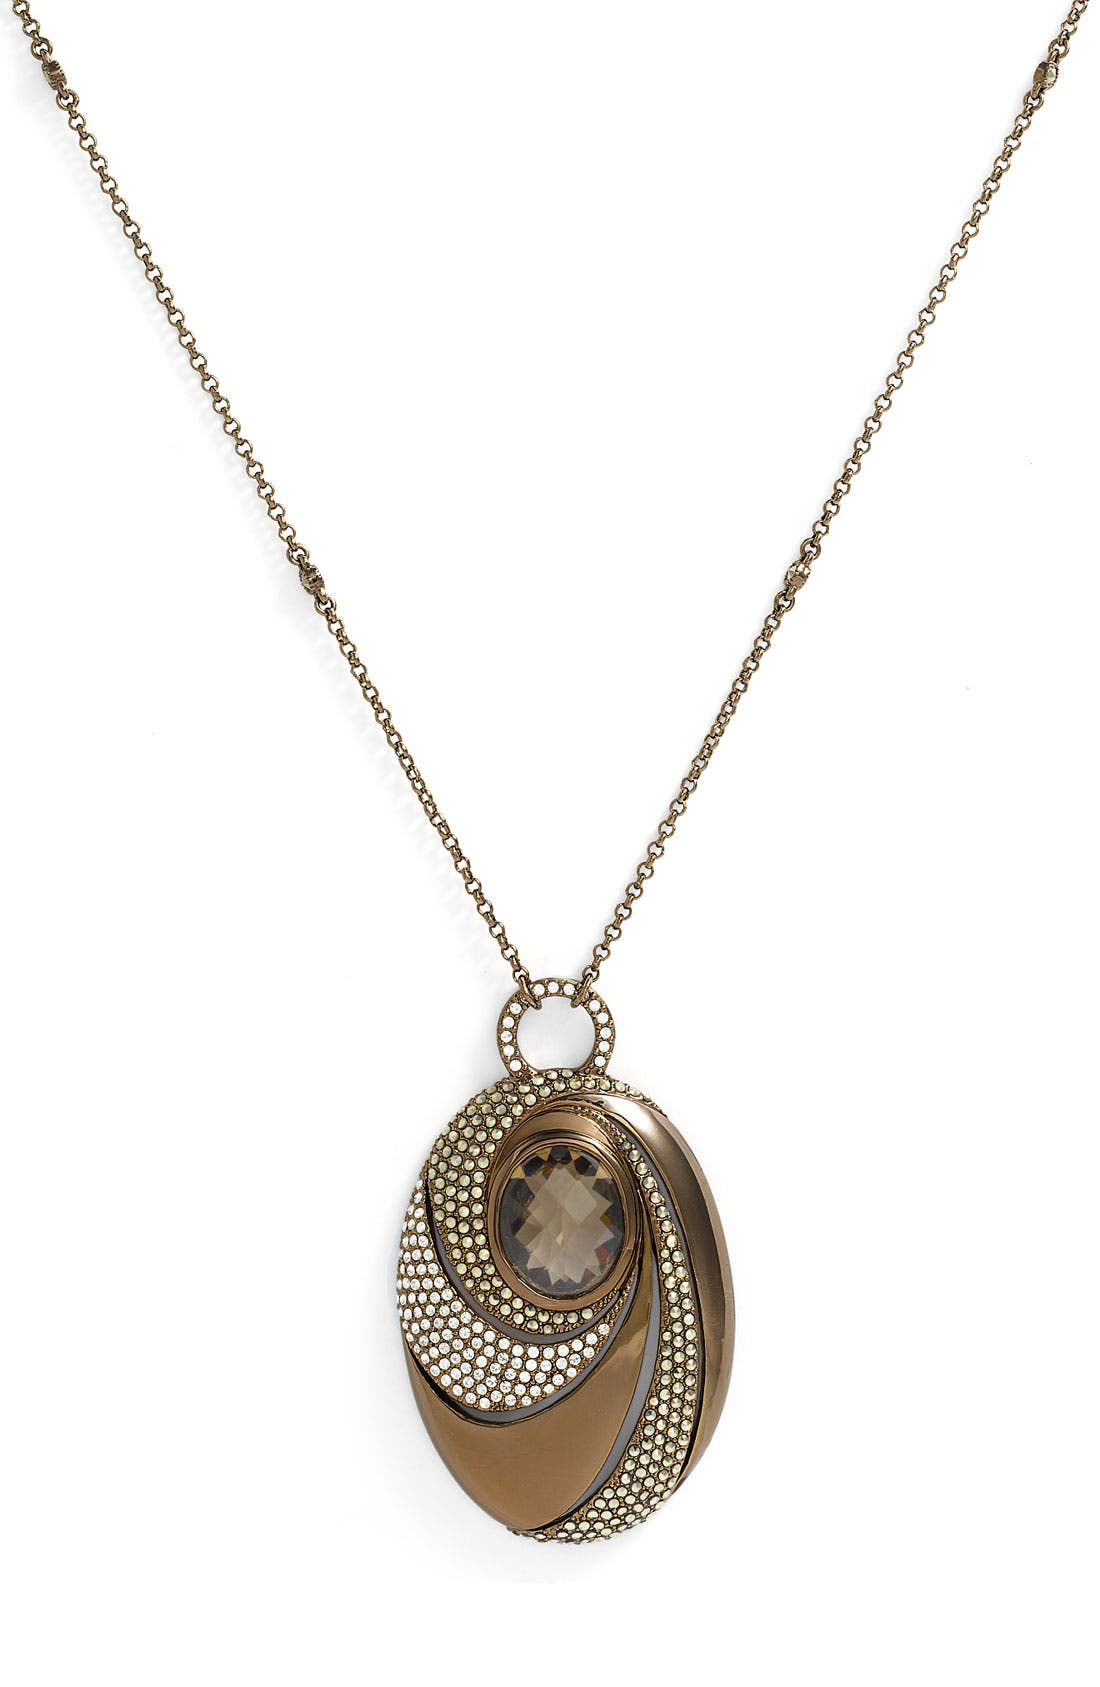 Alternate Image 1 Selected - Judith Jack 'Twister' Convertible Statement Pendant Necklace